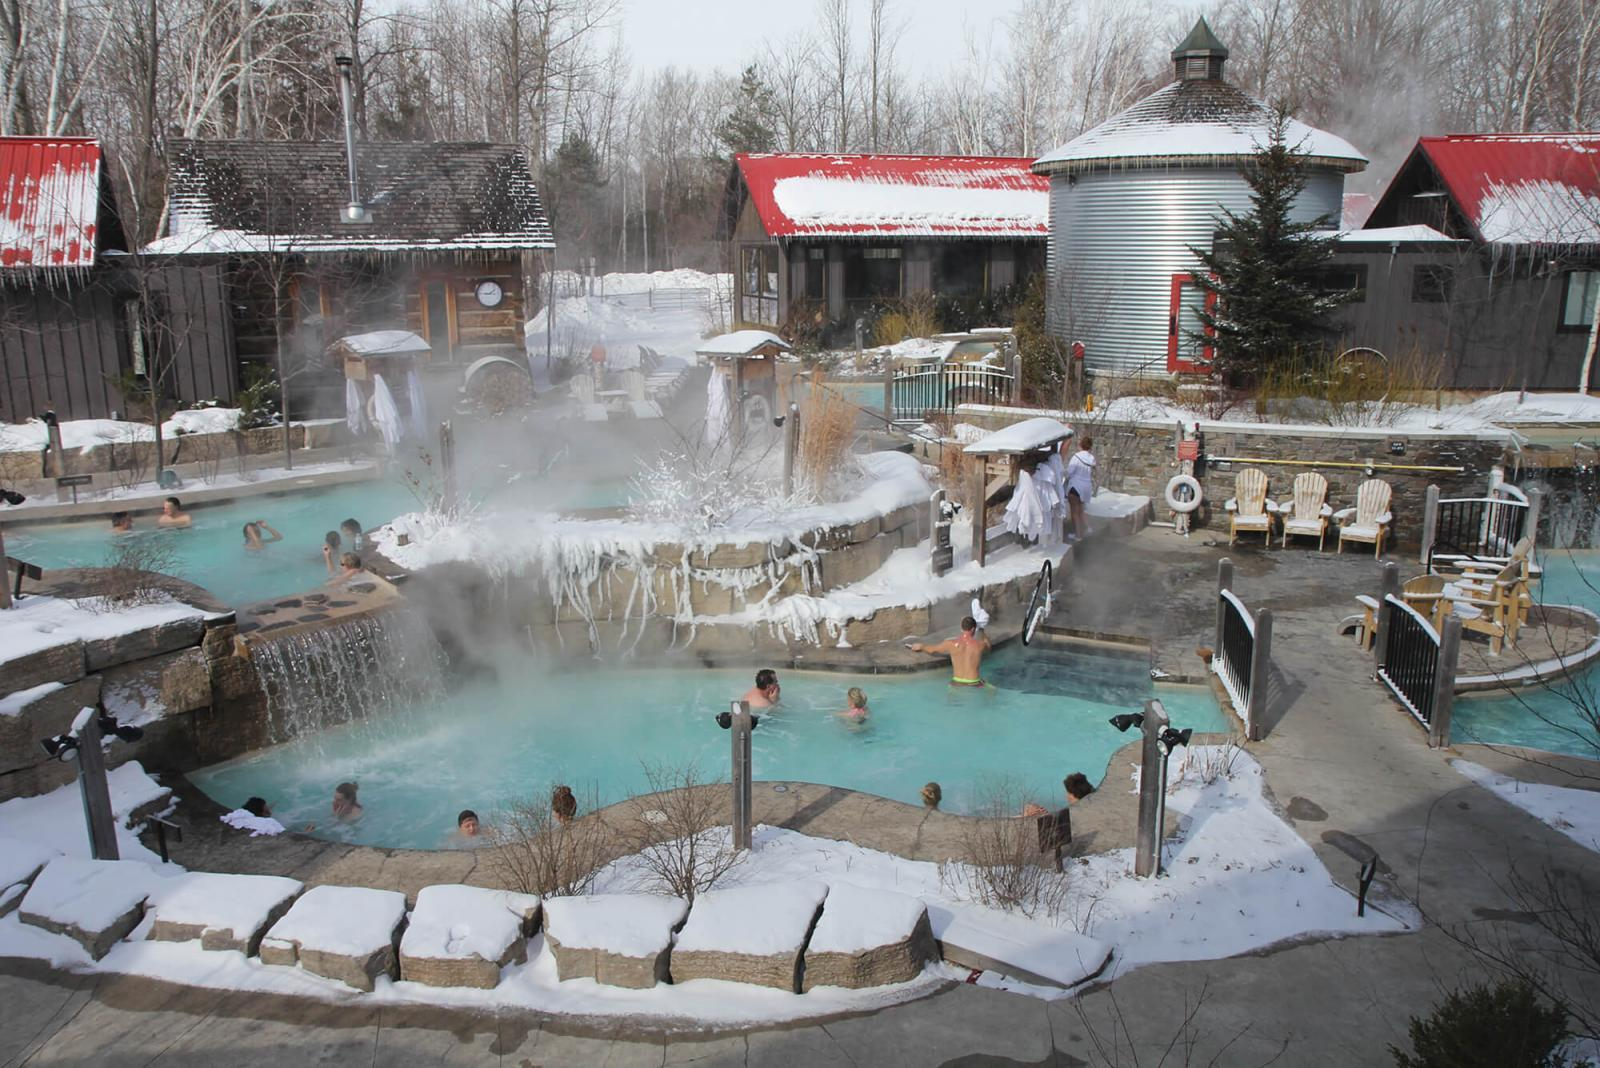 Be it skiing or relaxing in the amazing spa, Georgian Lakelands Chapter's annual event has something for everyone.